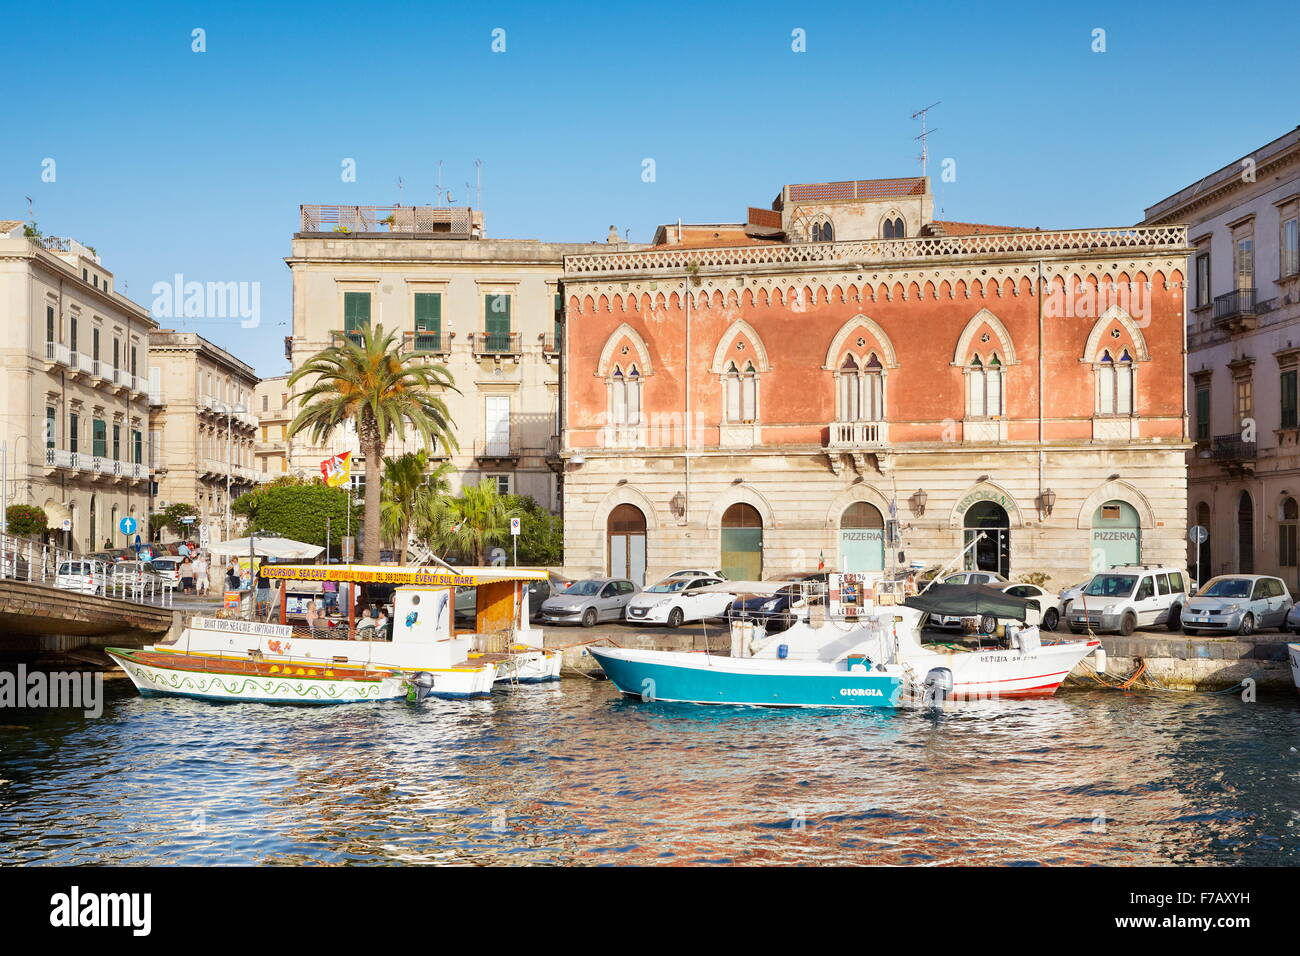 The harbor of Ortigia Island, Syracuse, Sicily, Italy UNESCO - Stock Image